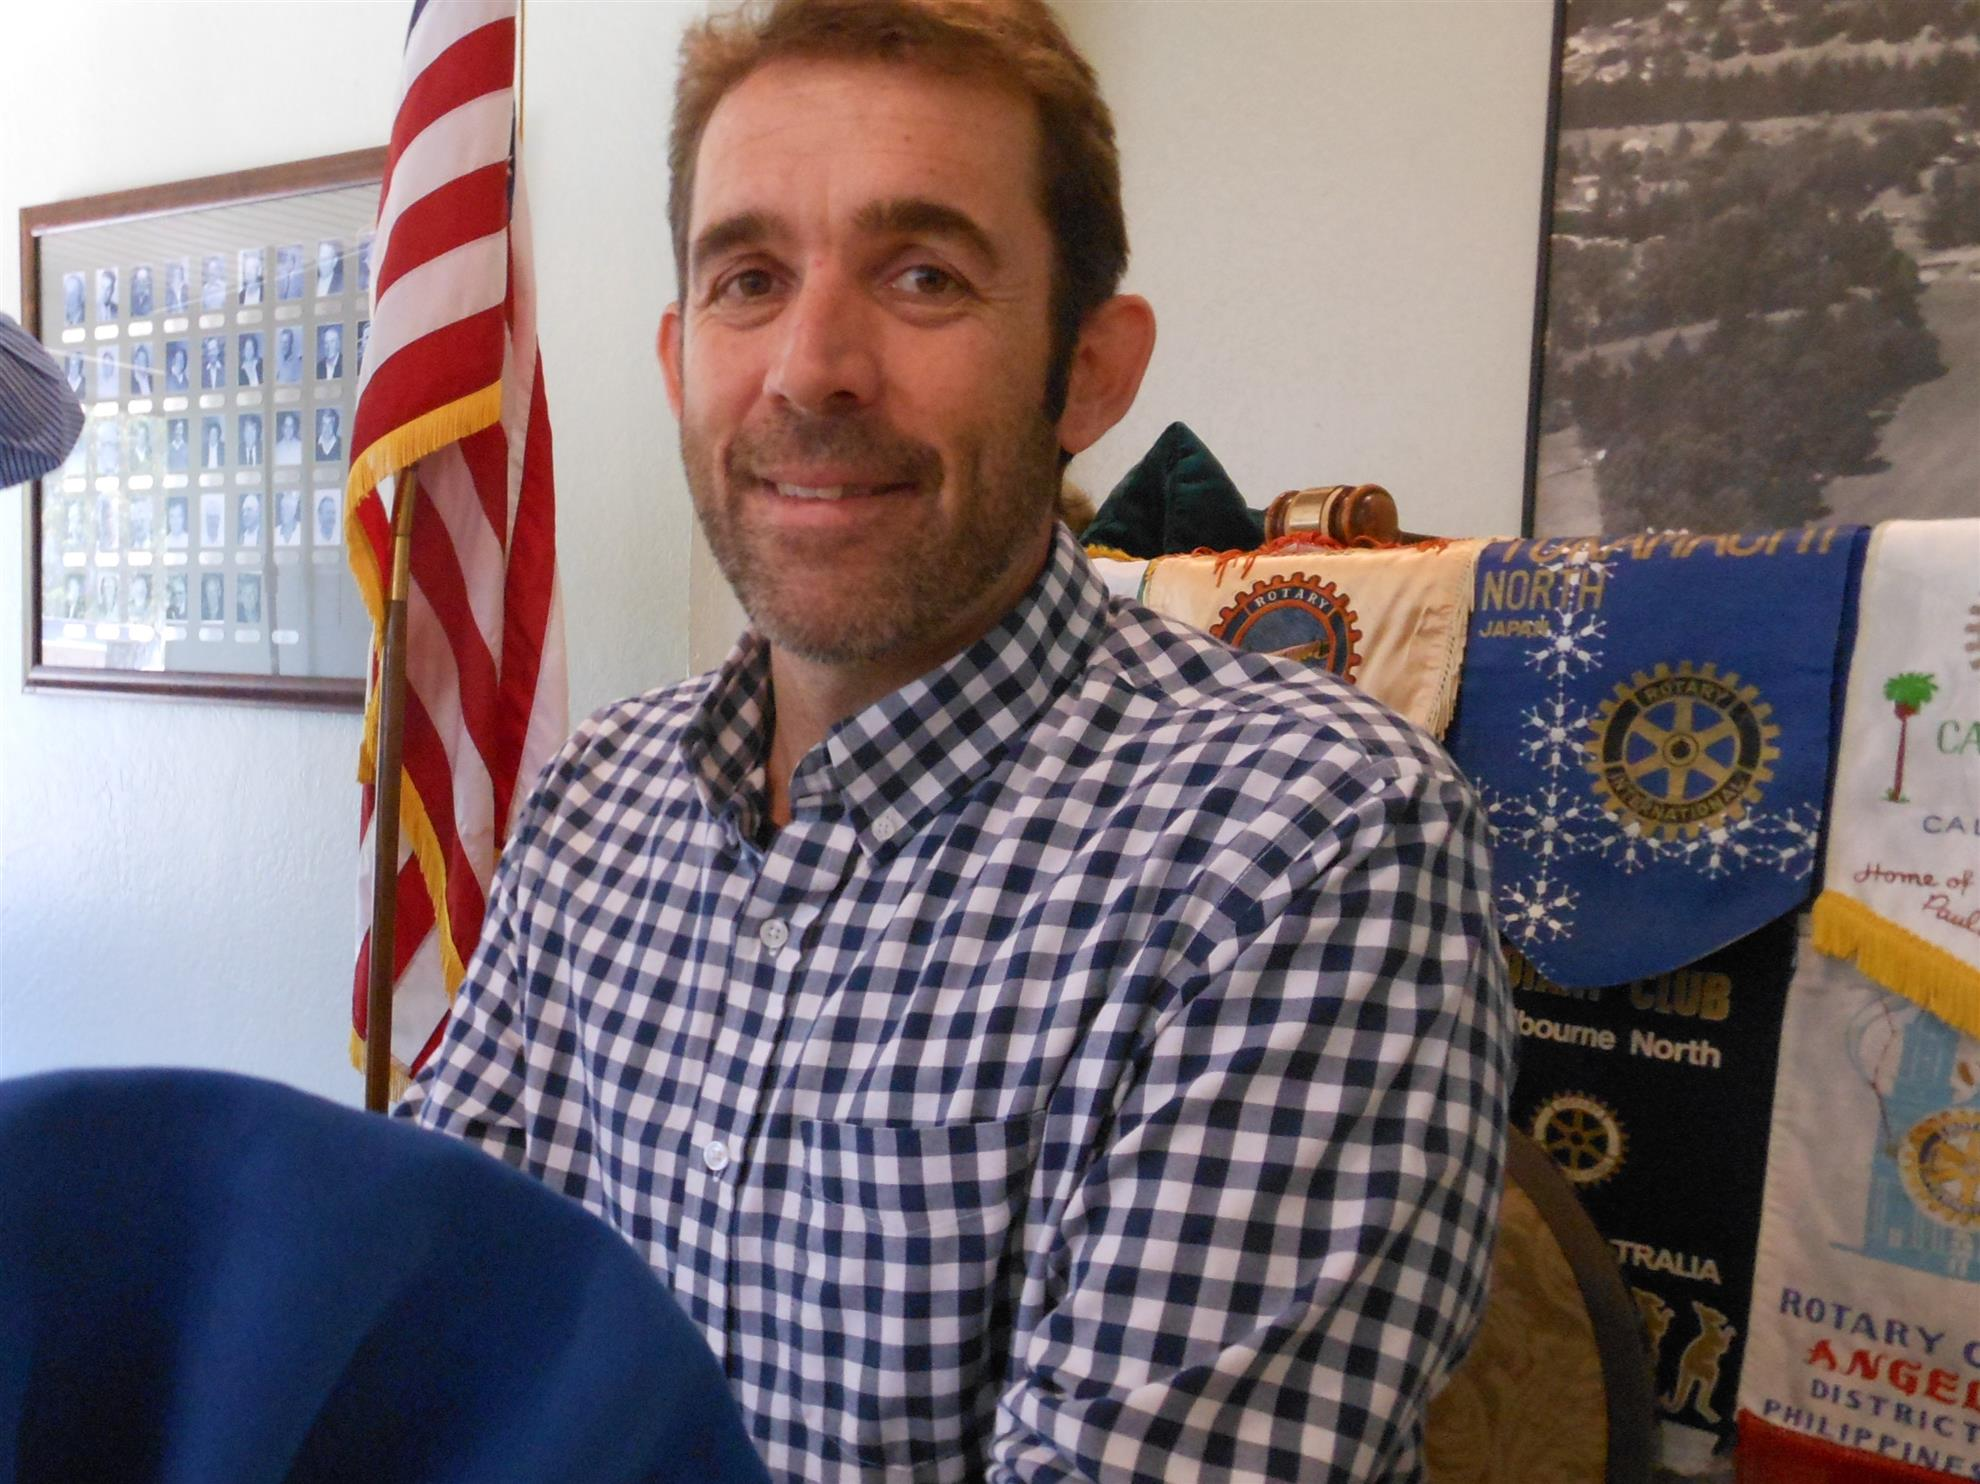 Stories Rotary Club Of Capitola Aptos Andrew Smith Floral Printed Shirt Navy L From Rise Against Hunger Which Is Collaborating To End He A Local Person And Joined In April This Year As Program